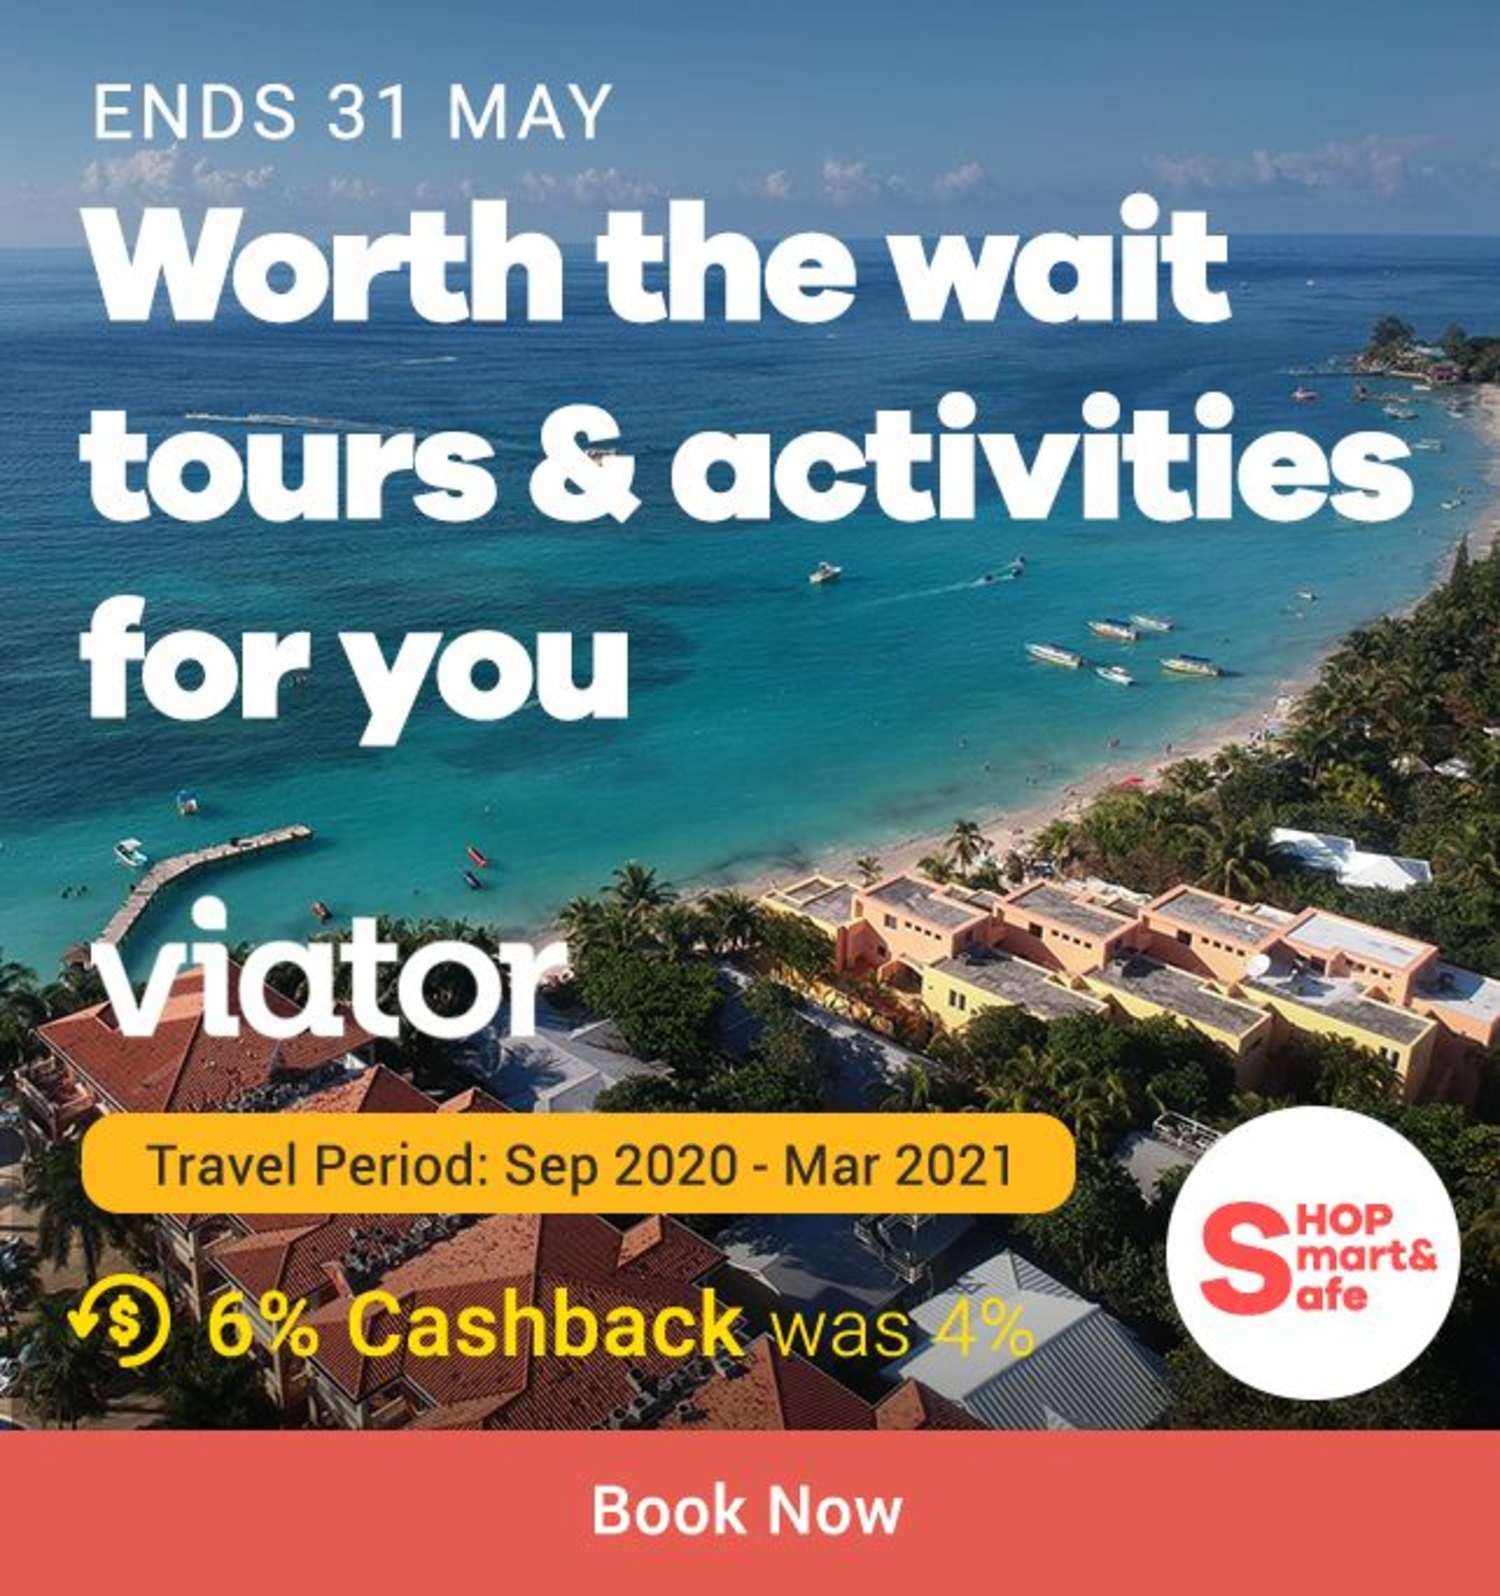 Viator: Worth the wait tours & activities